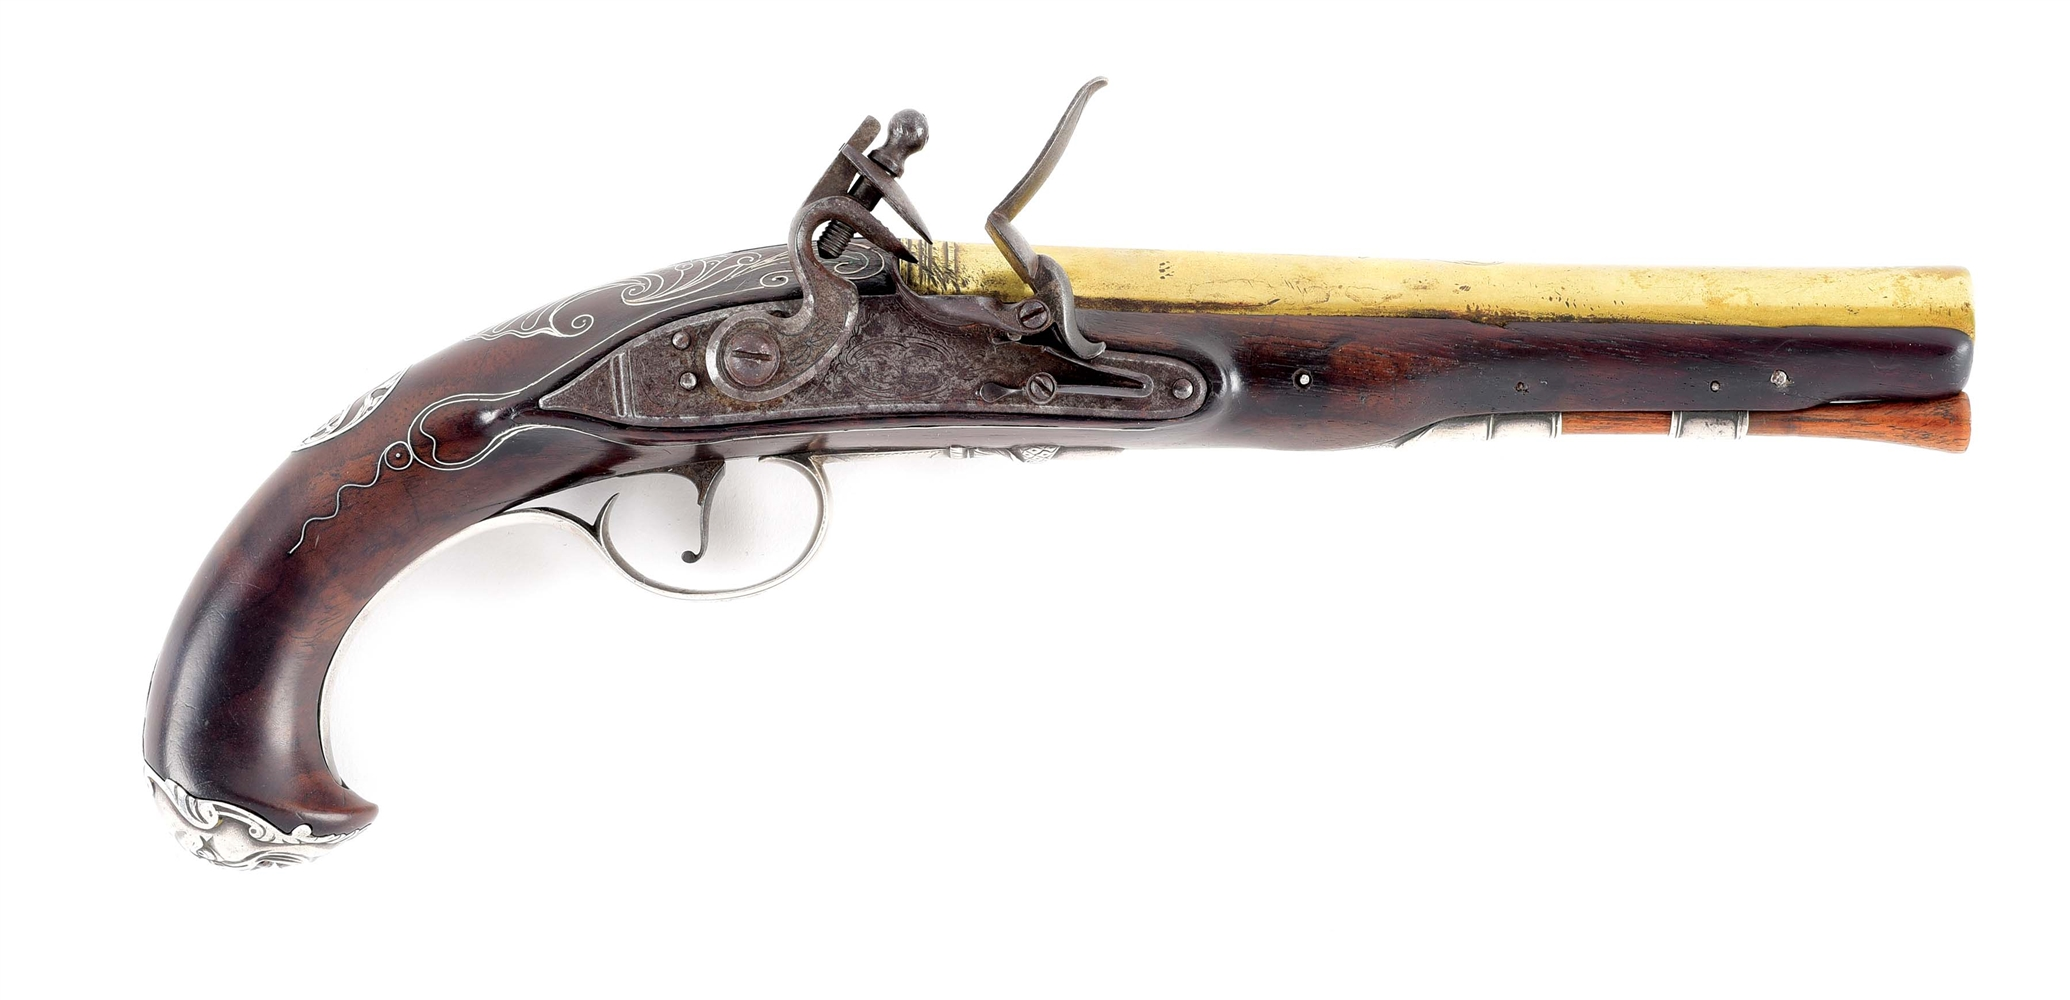 [REVOLUTIONARY WAR]. AN EXTREMELY RARE, SILVER-MOUNTED, OFFICERS PISTOL MADE AT RAPPAHANNOCK FORGE, VIRGINIA.